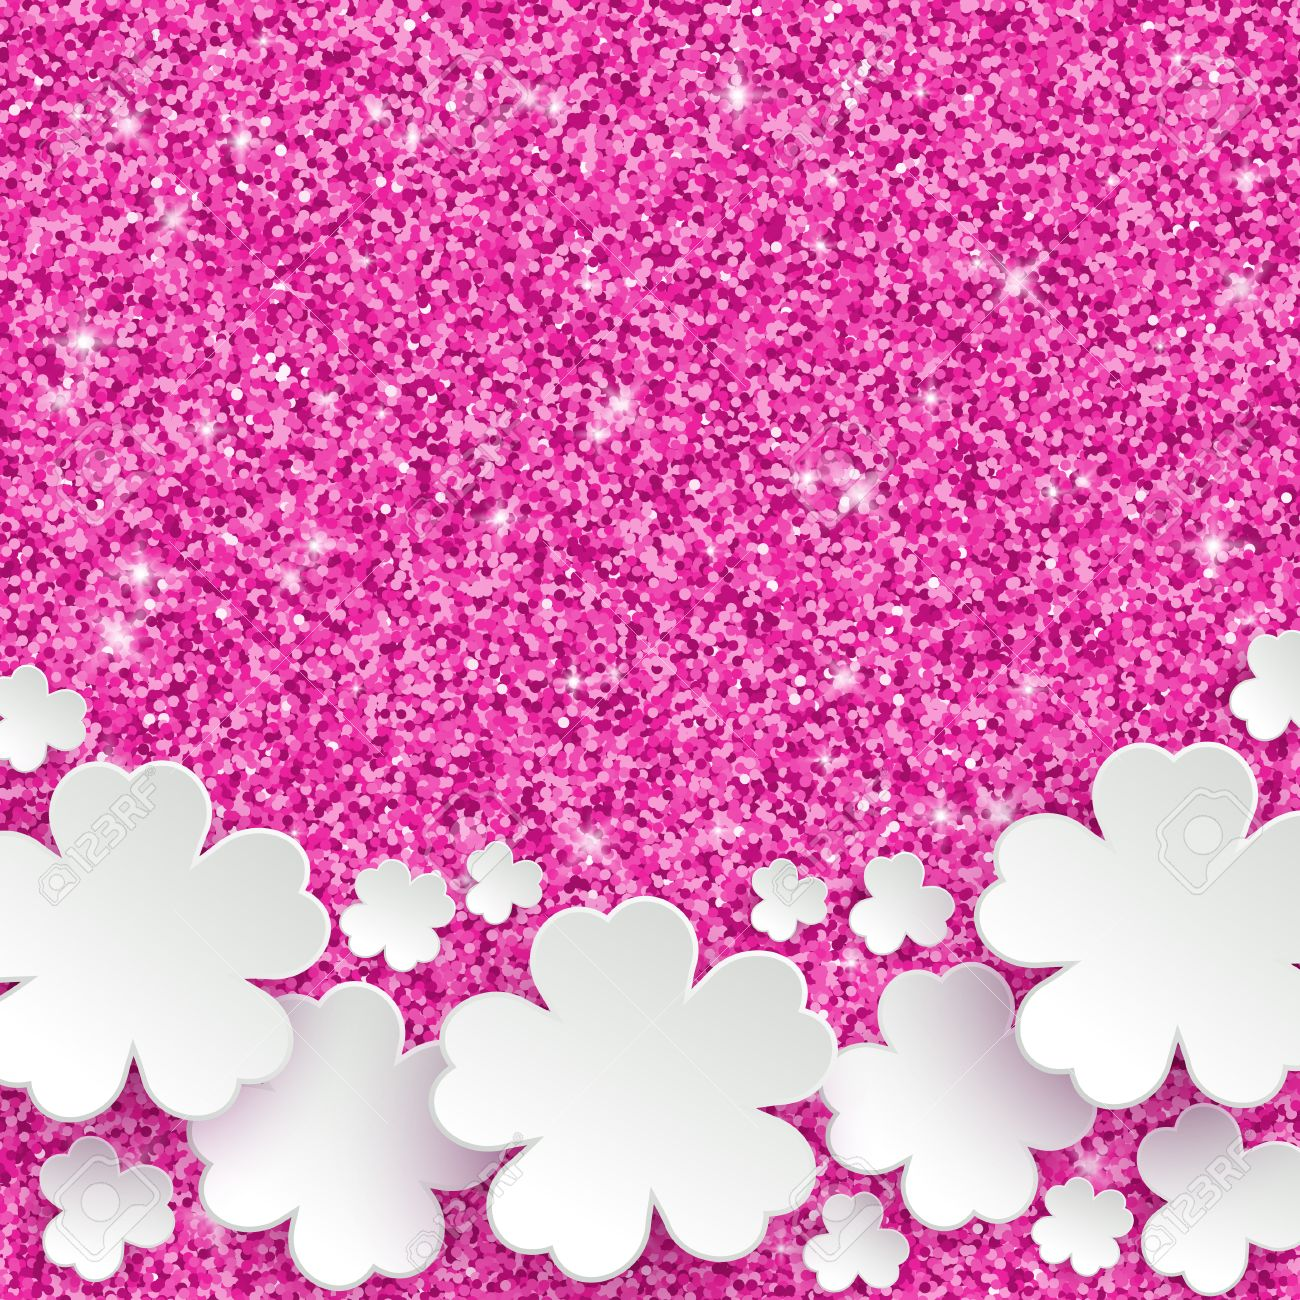 Happy Mothers Day or international womens day or Easter greeting card, holiday glitter dust sparkle pink background with white paper flowers, vector illustration with place for text - 52522751